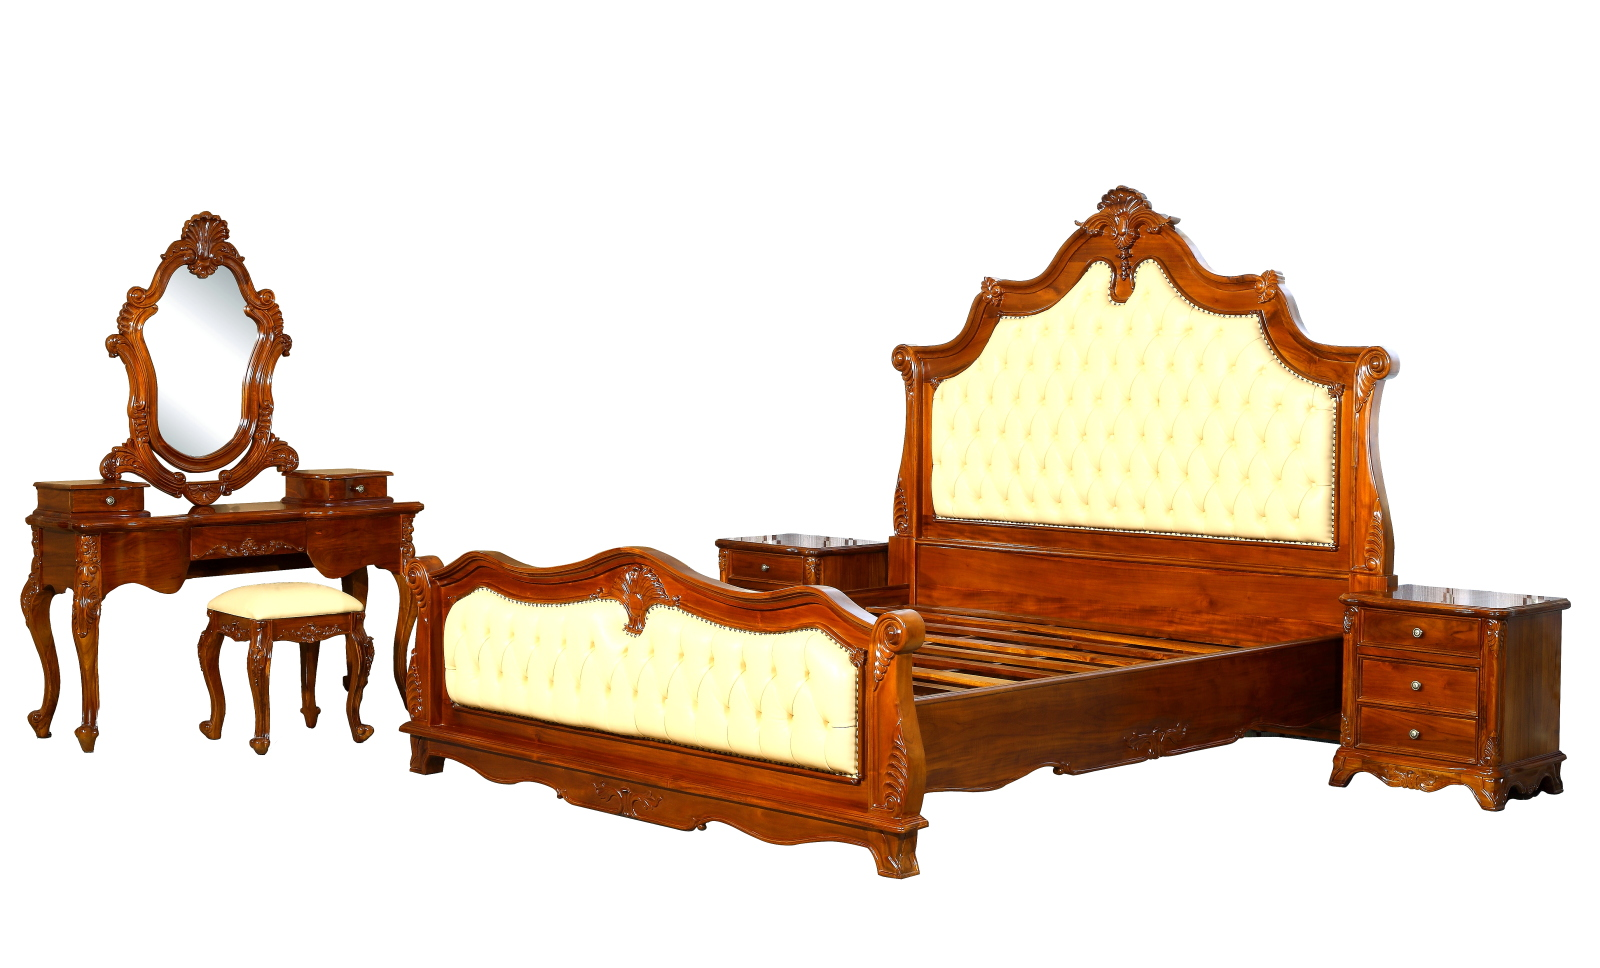 Kartini Teak Bedroom Furniture Hotel